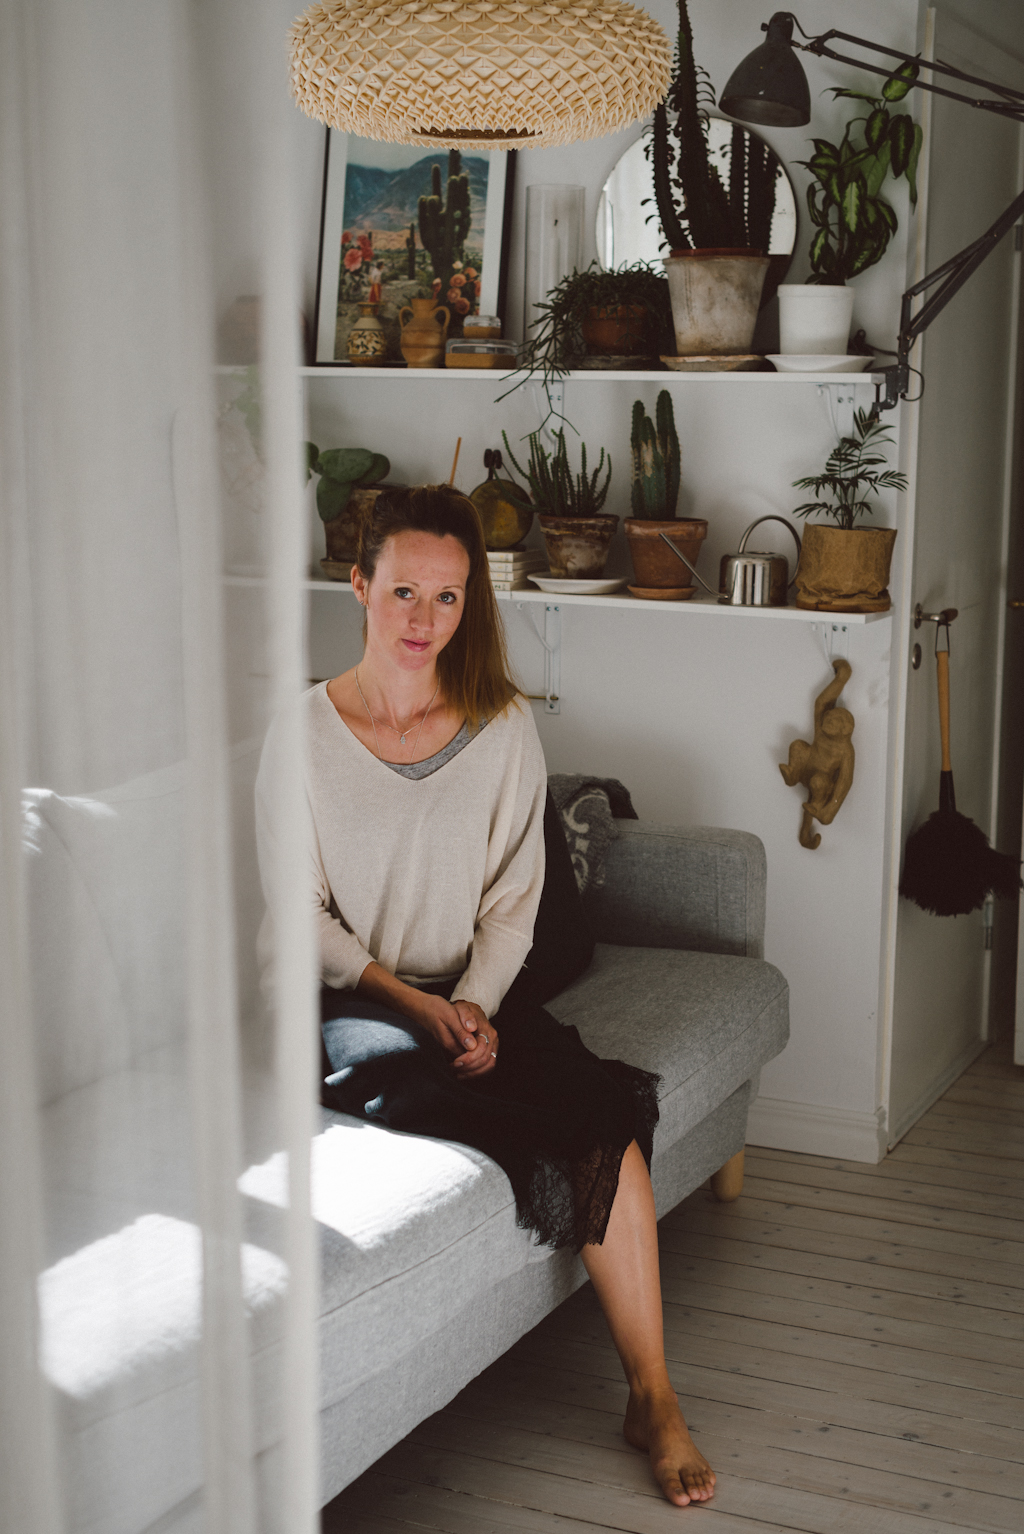 Meeting Pernilla by Babes in Boyland